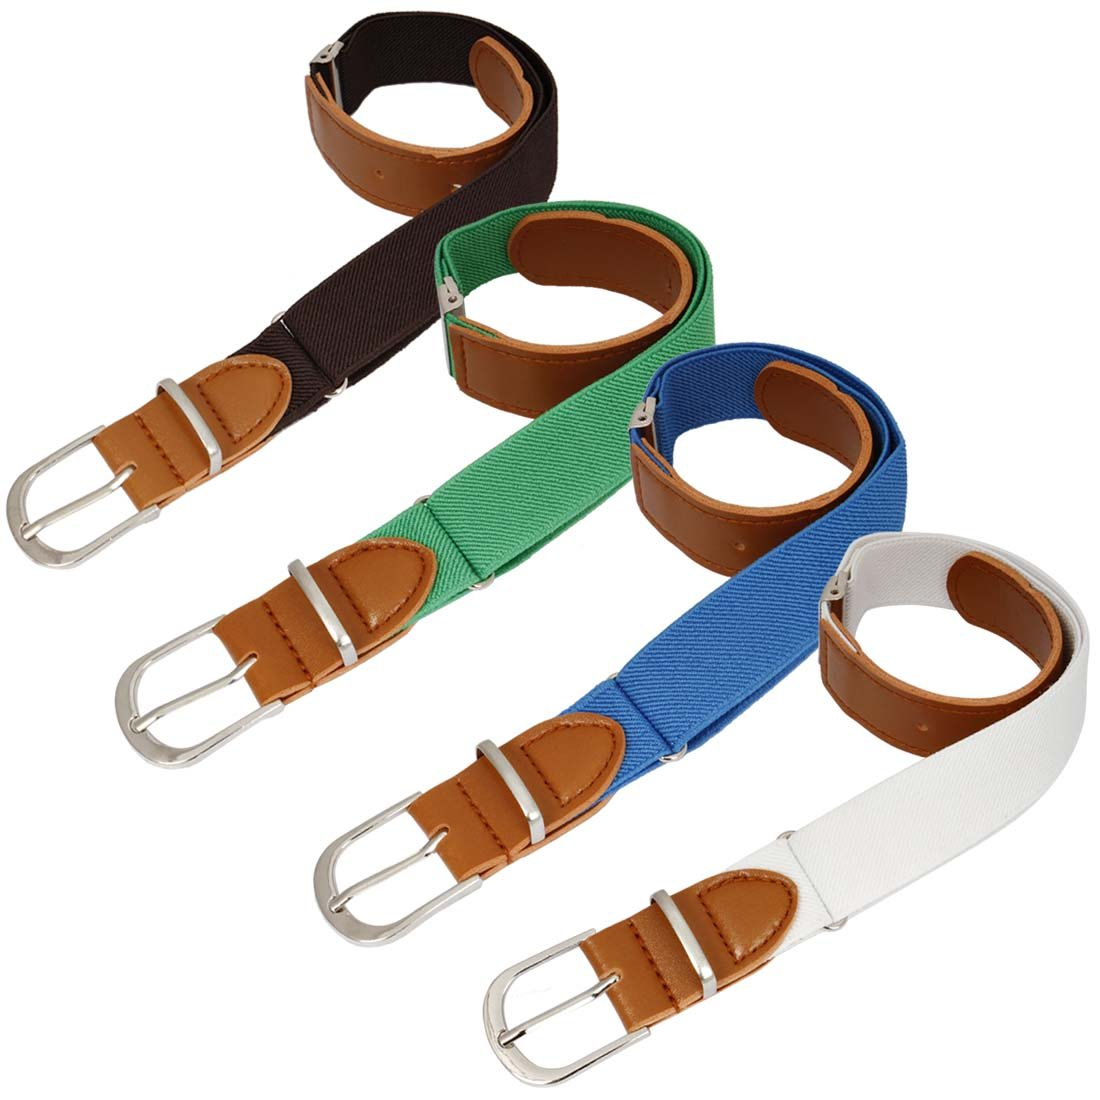 BMC Boys 4pc Solid Colored Adjustable Elastic Band With Leather Loop Belt Set